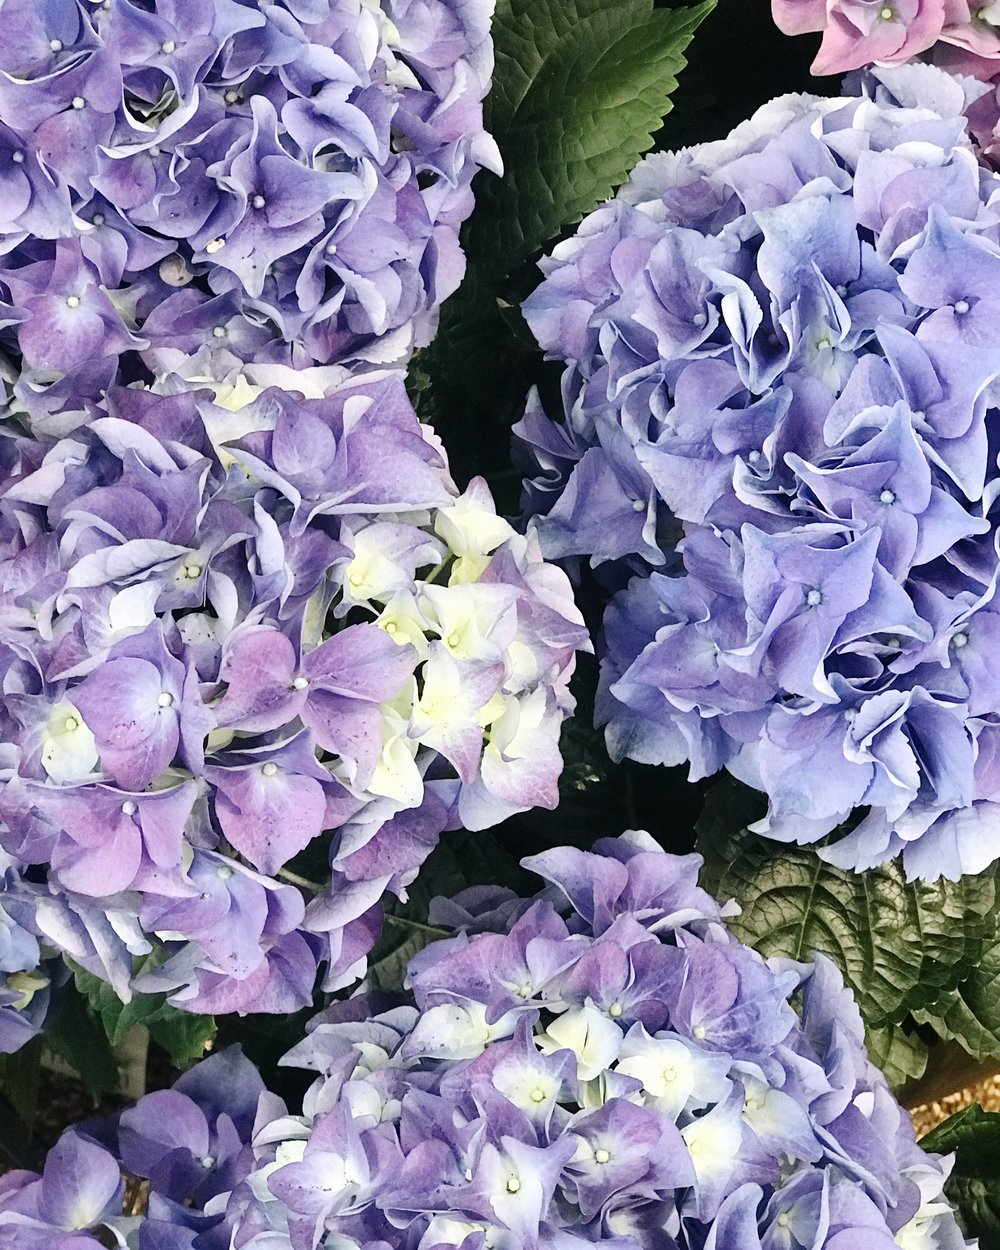 Spring Flowers 101, Hydrangeas, Bringing fresh flowers into your interior design and home decor, Nyla Free Designs, Calgary Interior Designer